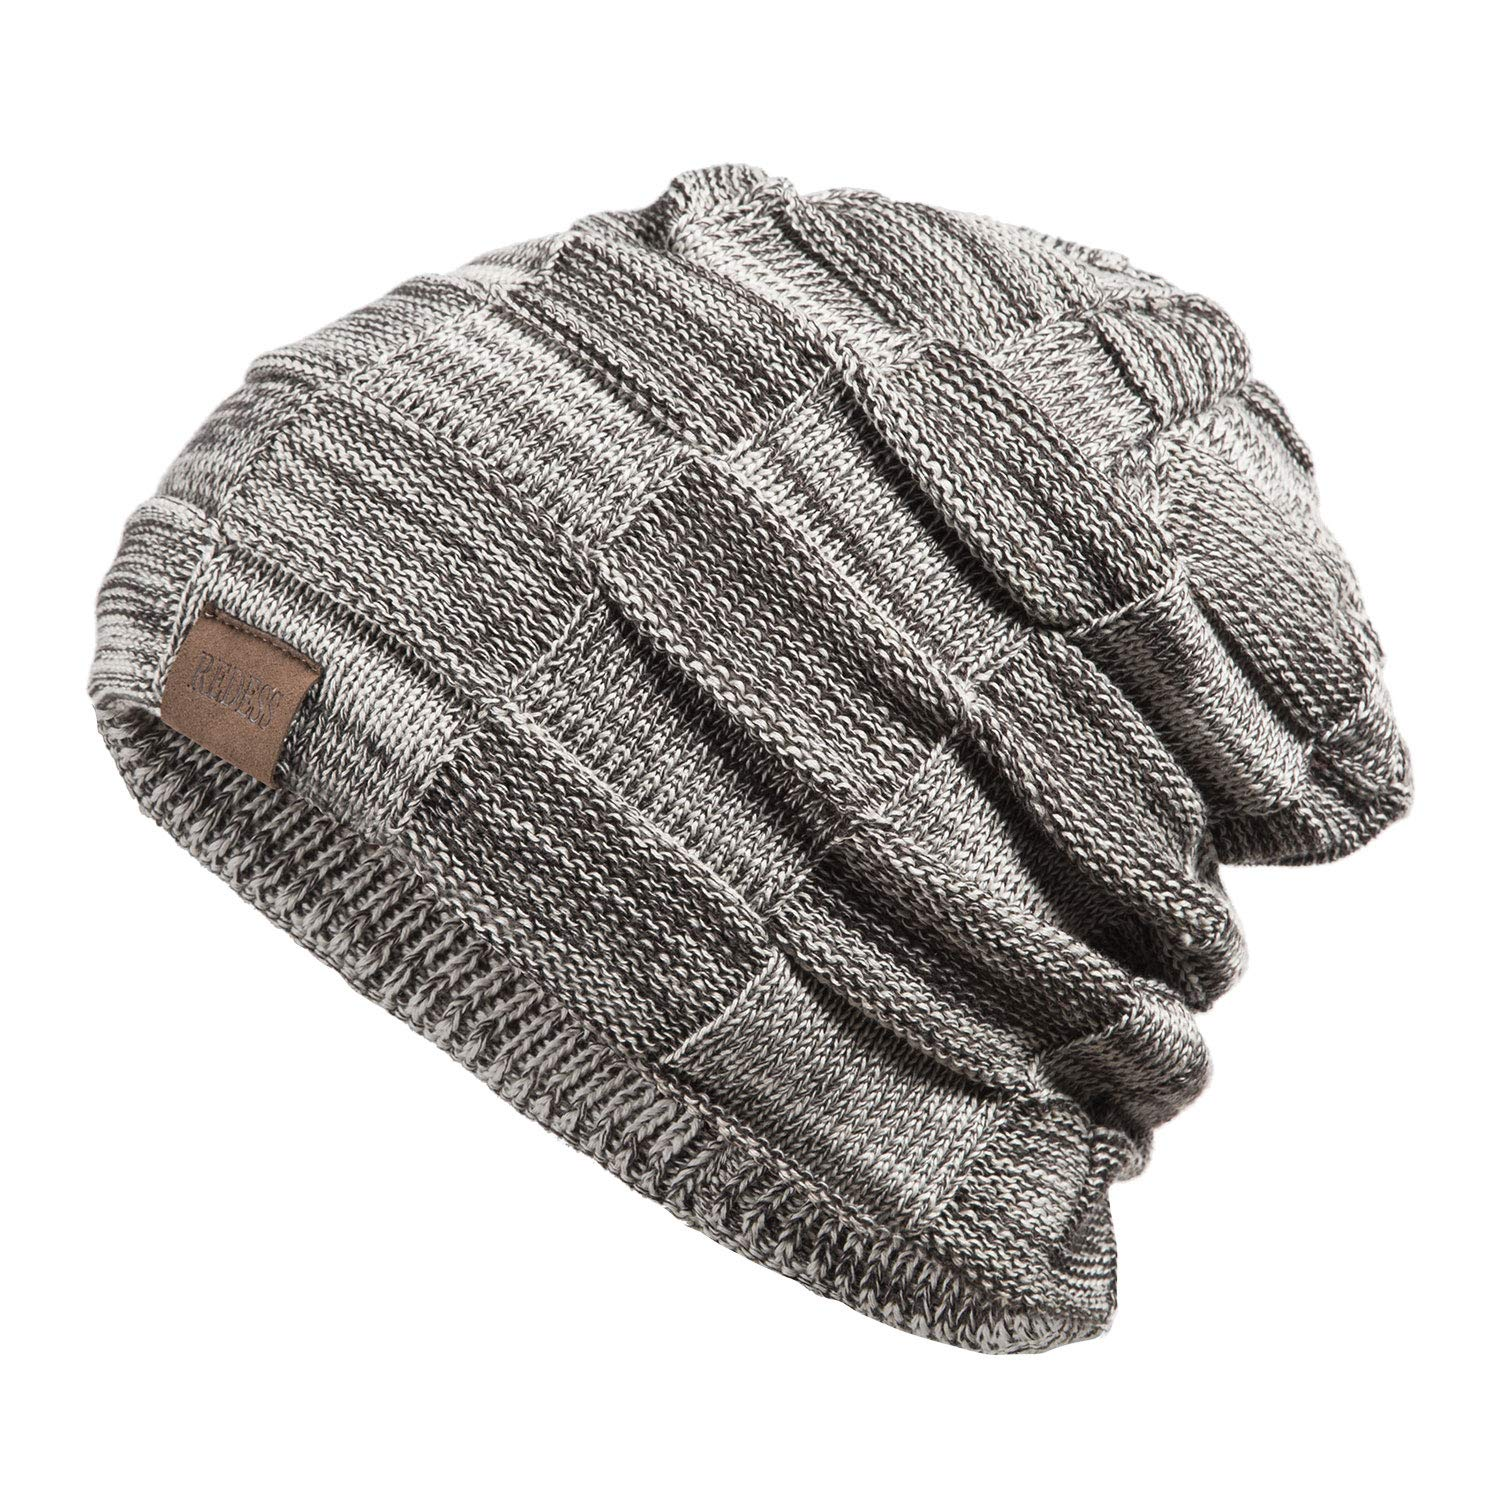 REDESS Beanie Hat for Men and Women Winter Warm Hats Knit Slouchy Thick Skull Cap nmfk8